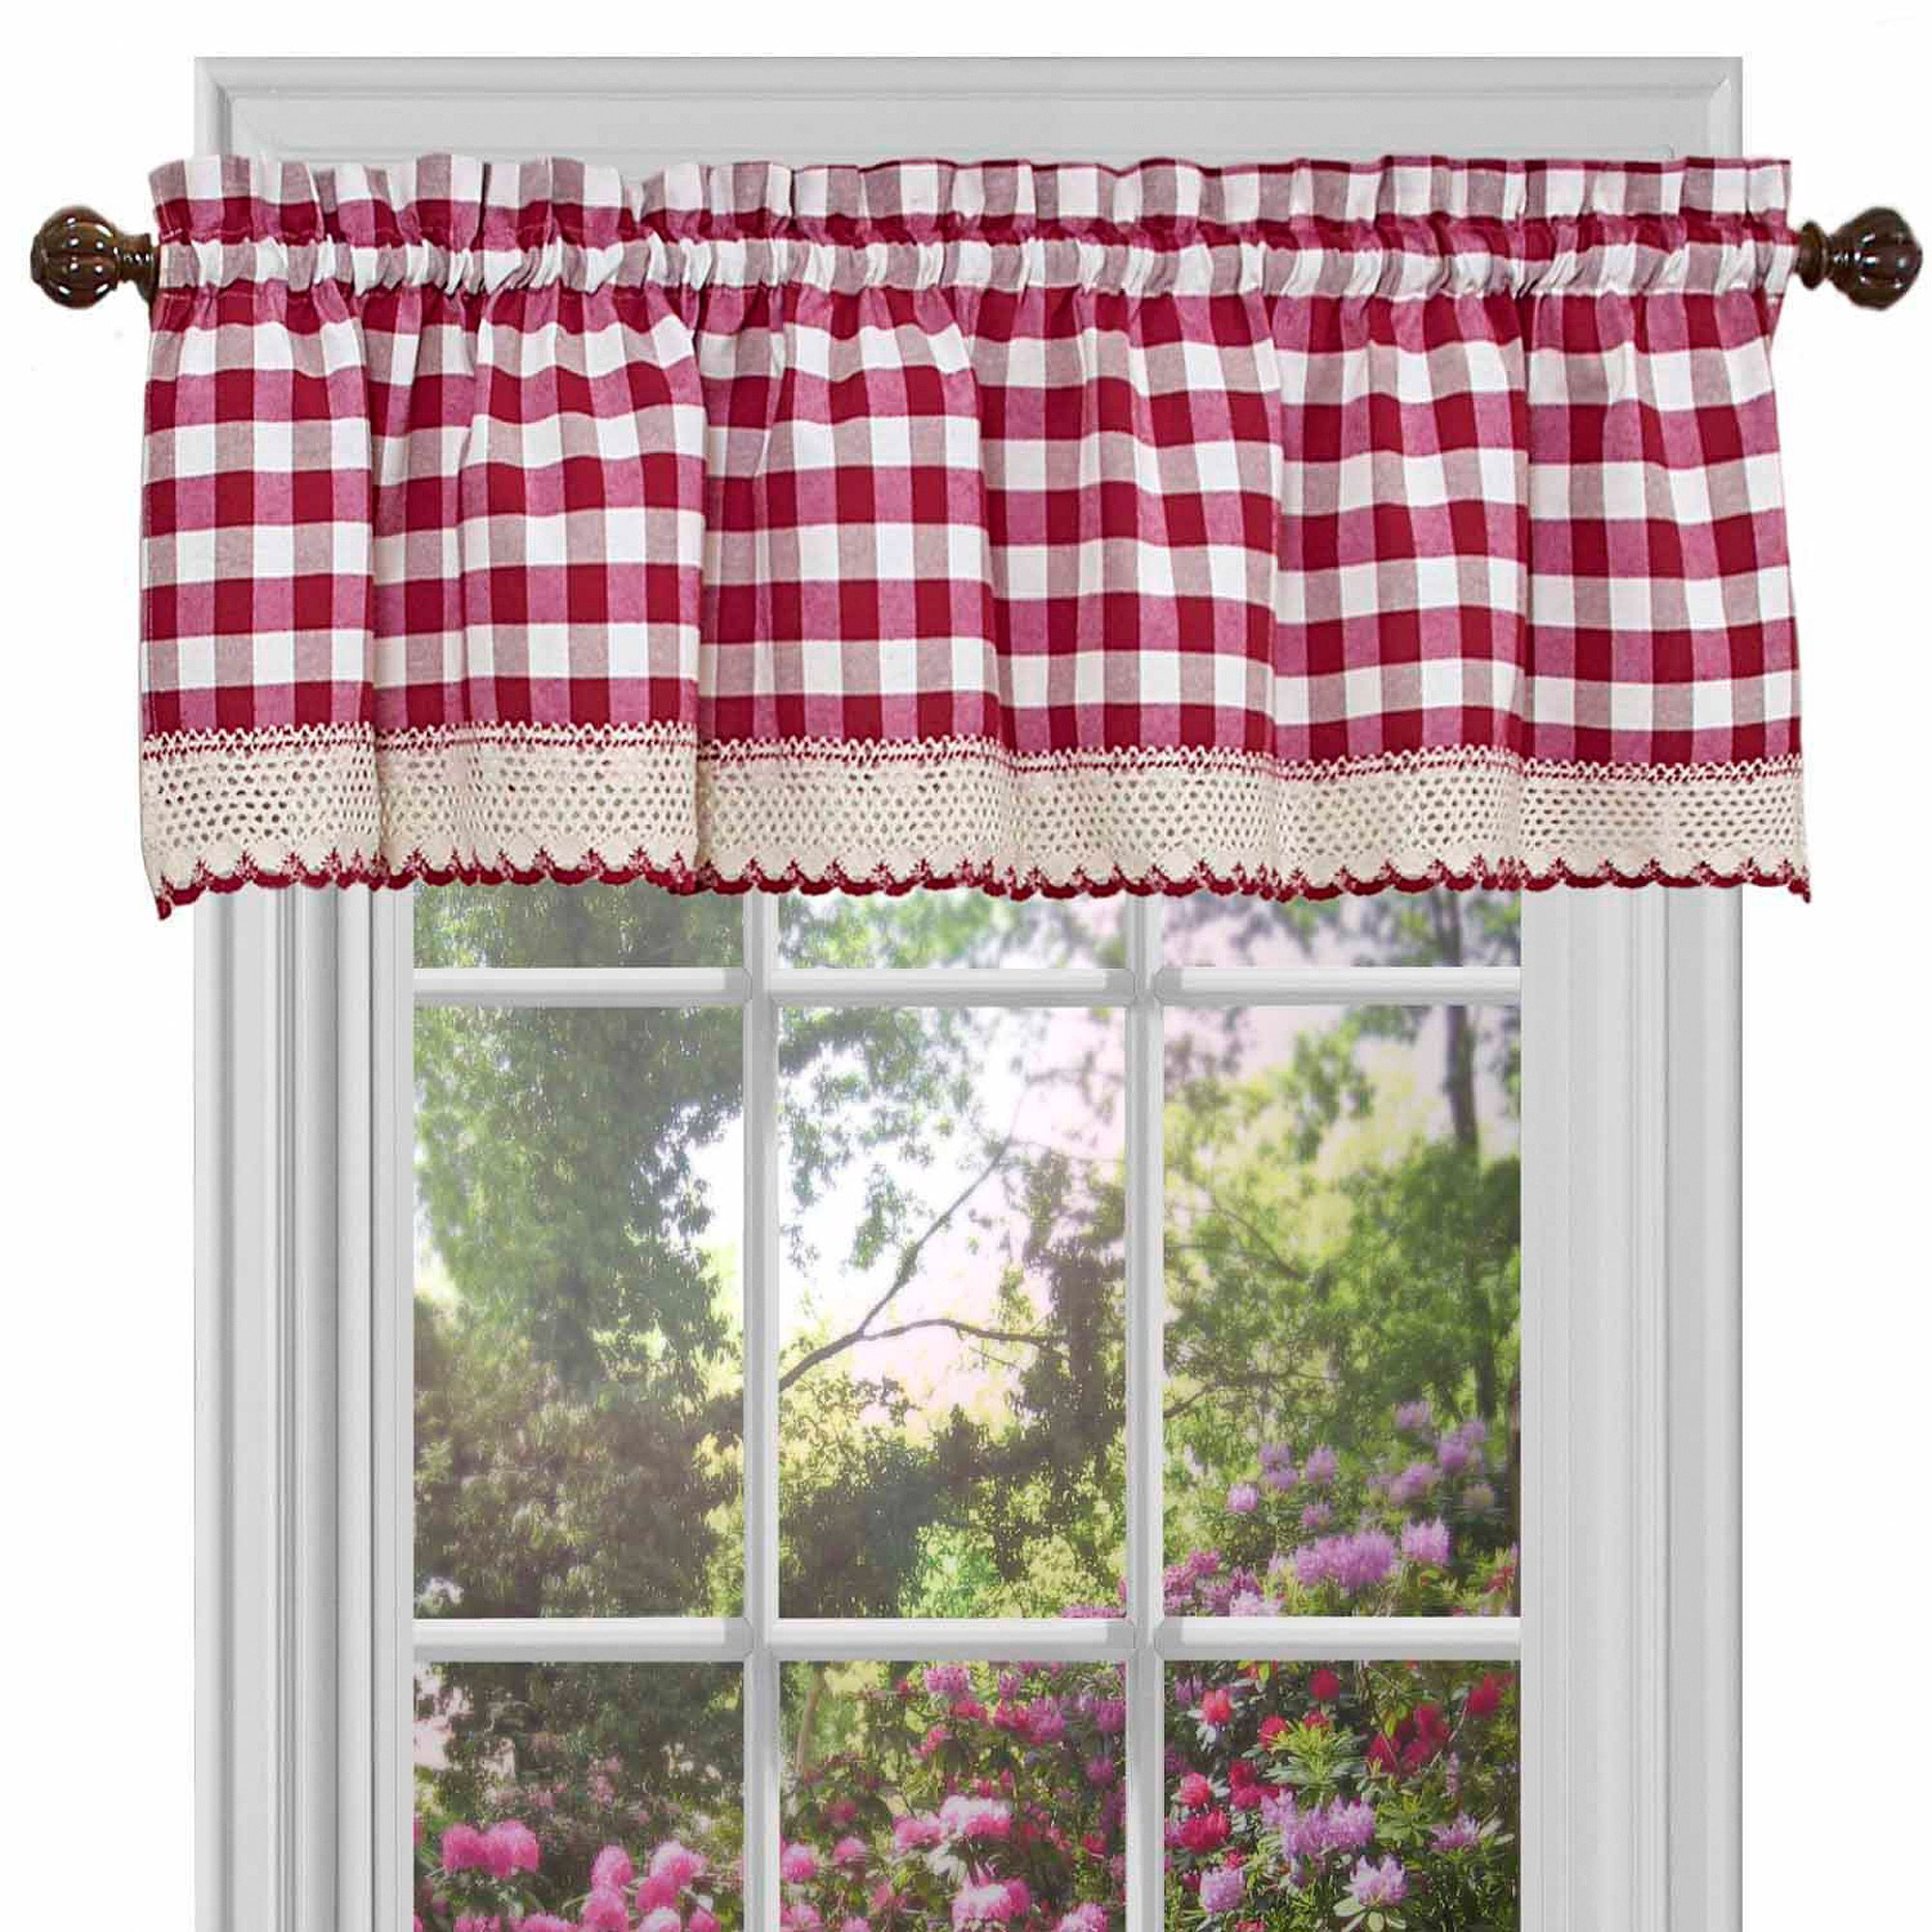 Home | Home ~ Kitchen Ideas | Buffalo Check Curtains, Check With Classic Navy Cotton Blend Buffalo Check Kitchen Curtain Sets (View 5 of 20)